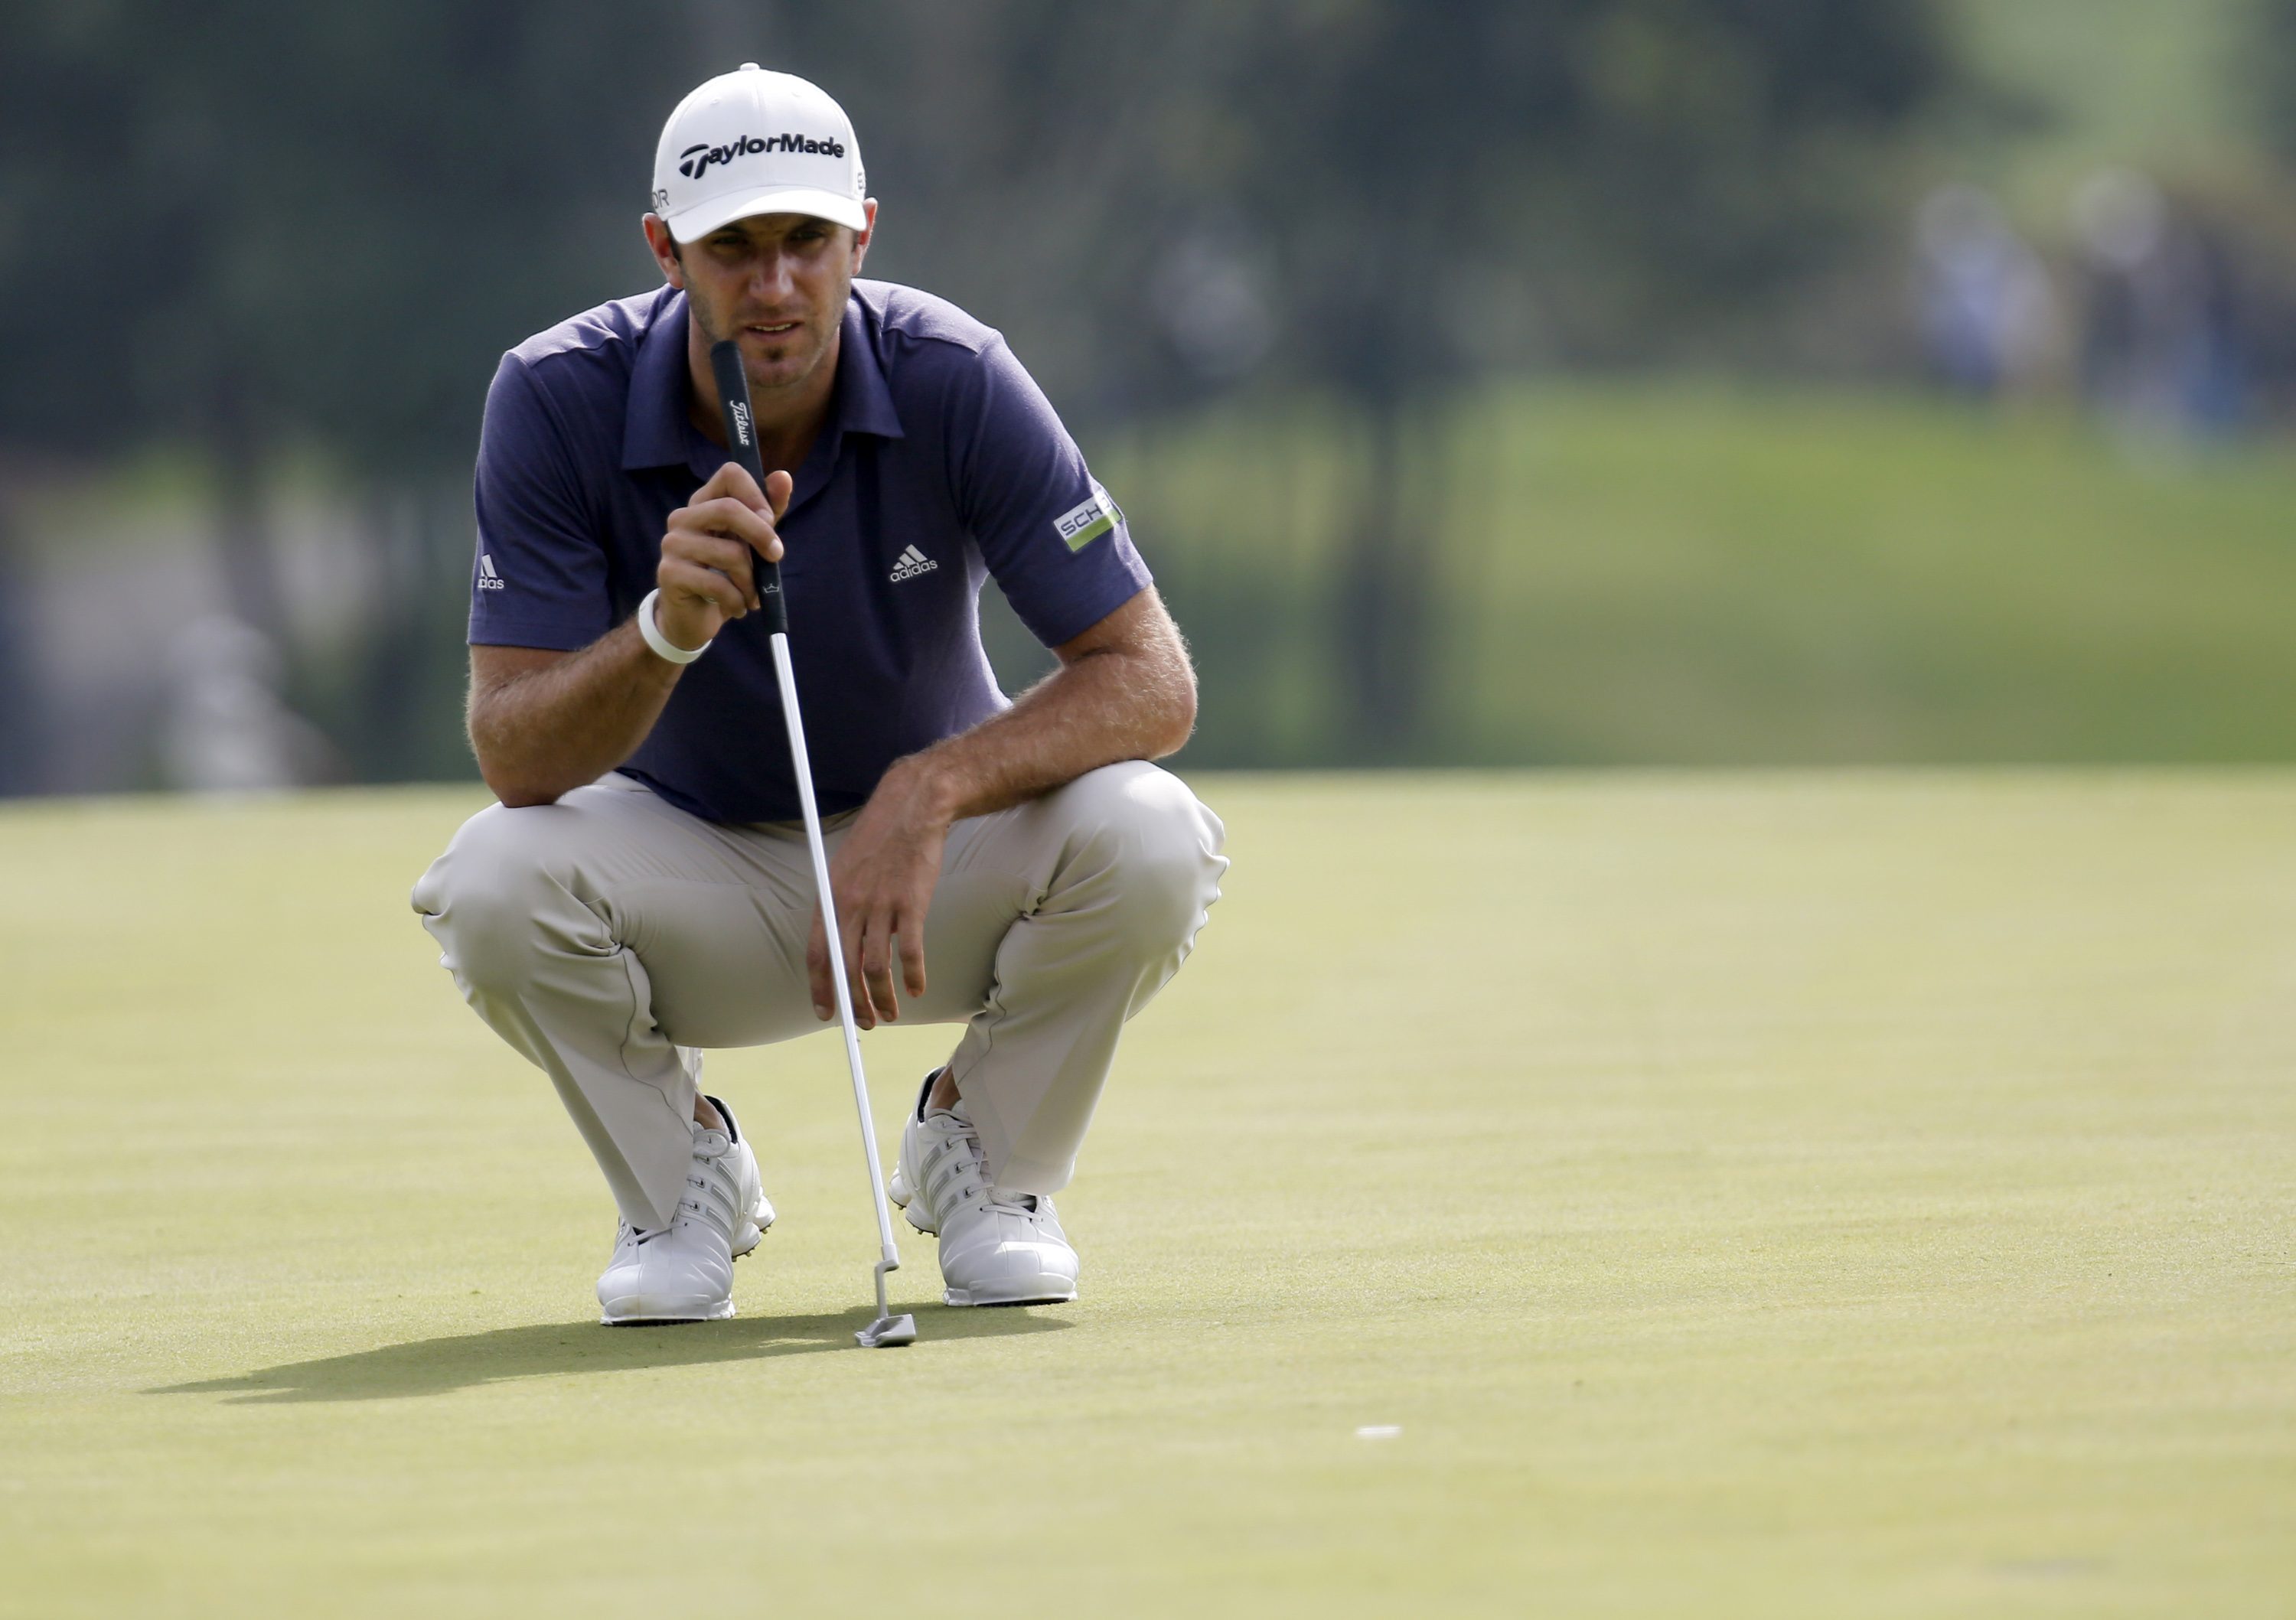 Johnson ties course record and builds 5-shot lead